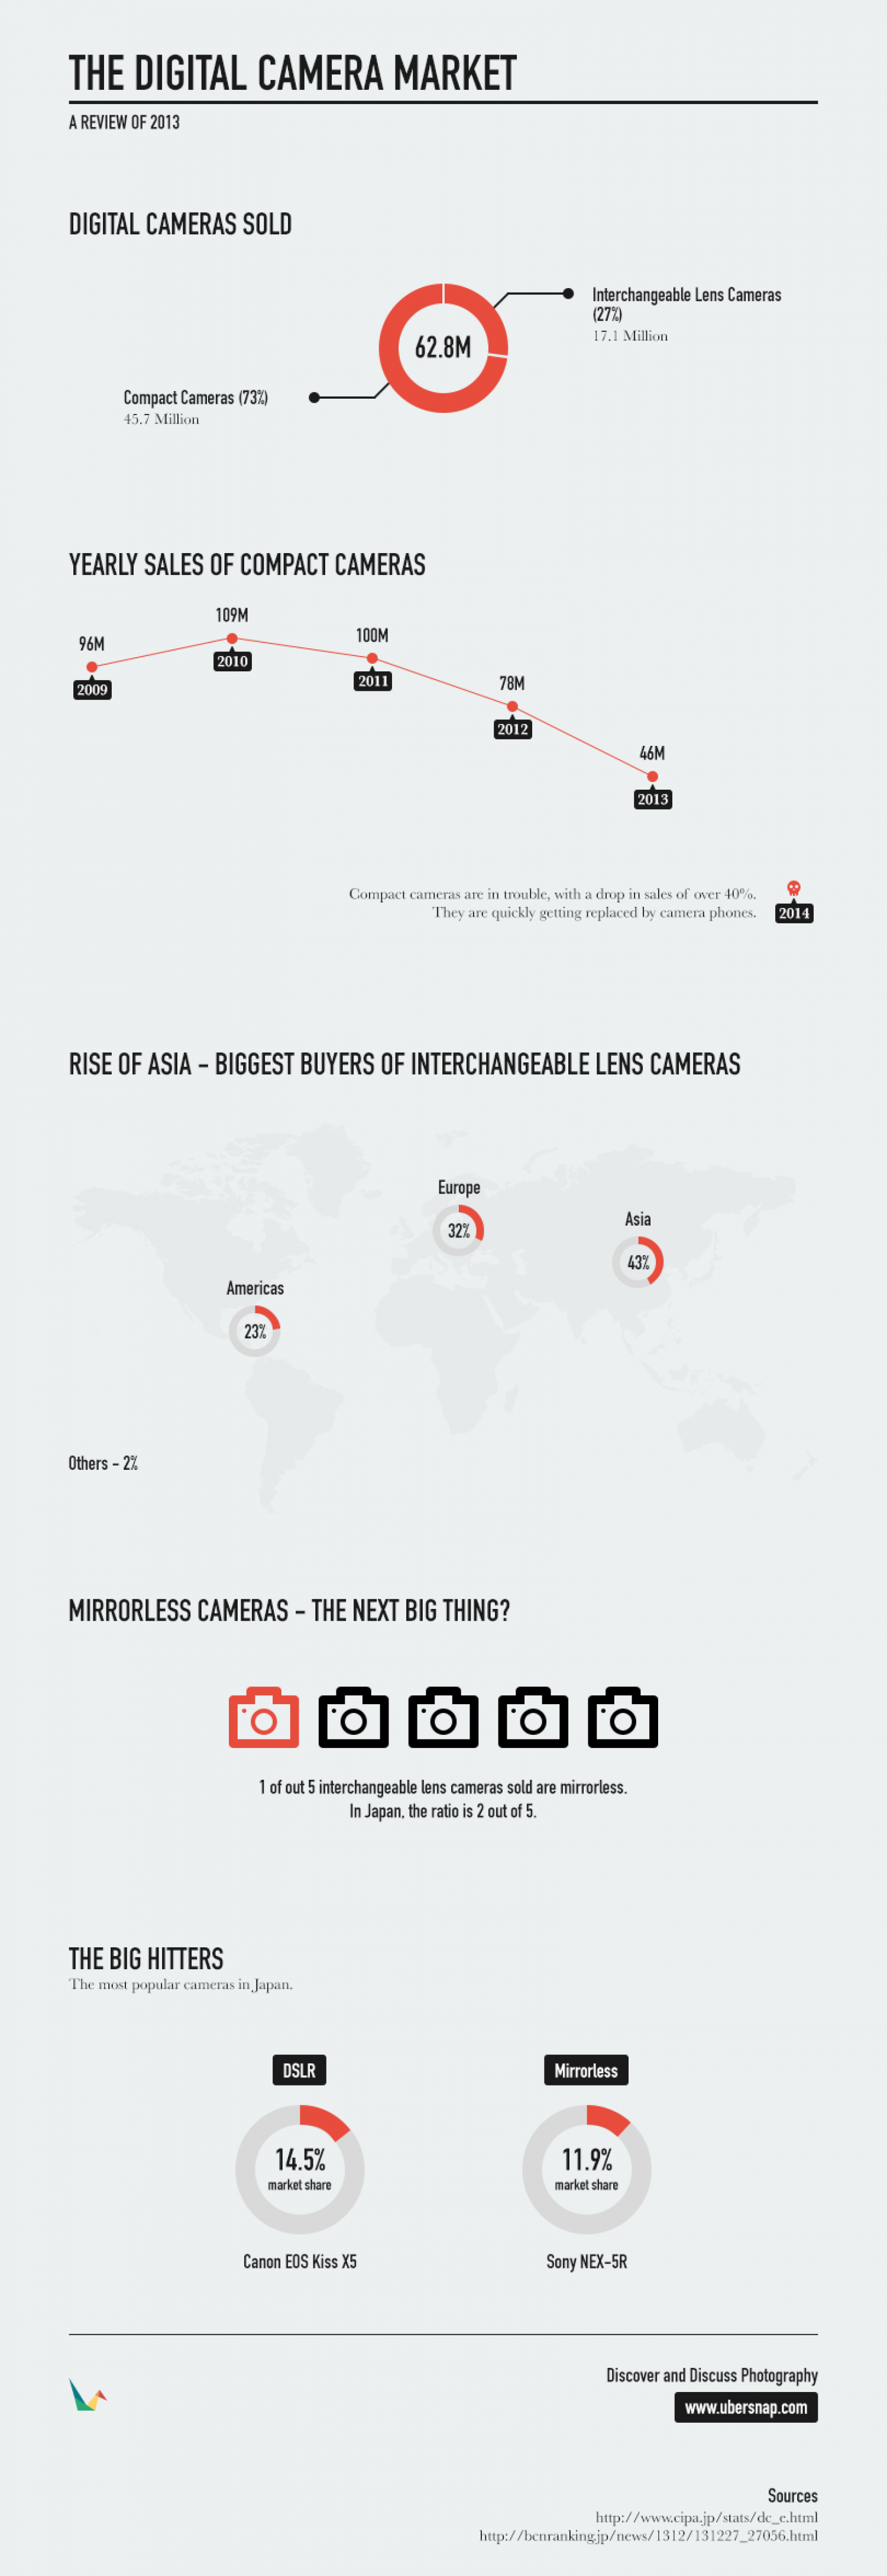 The Digital Camera Market in 2013 Infographic